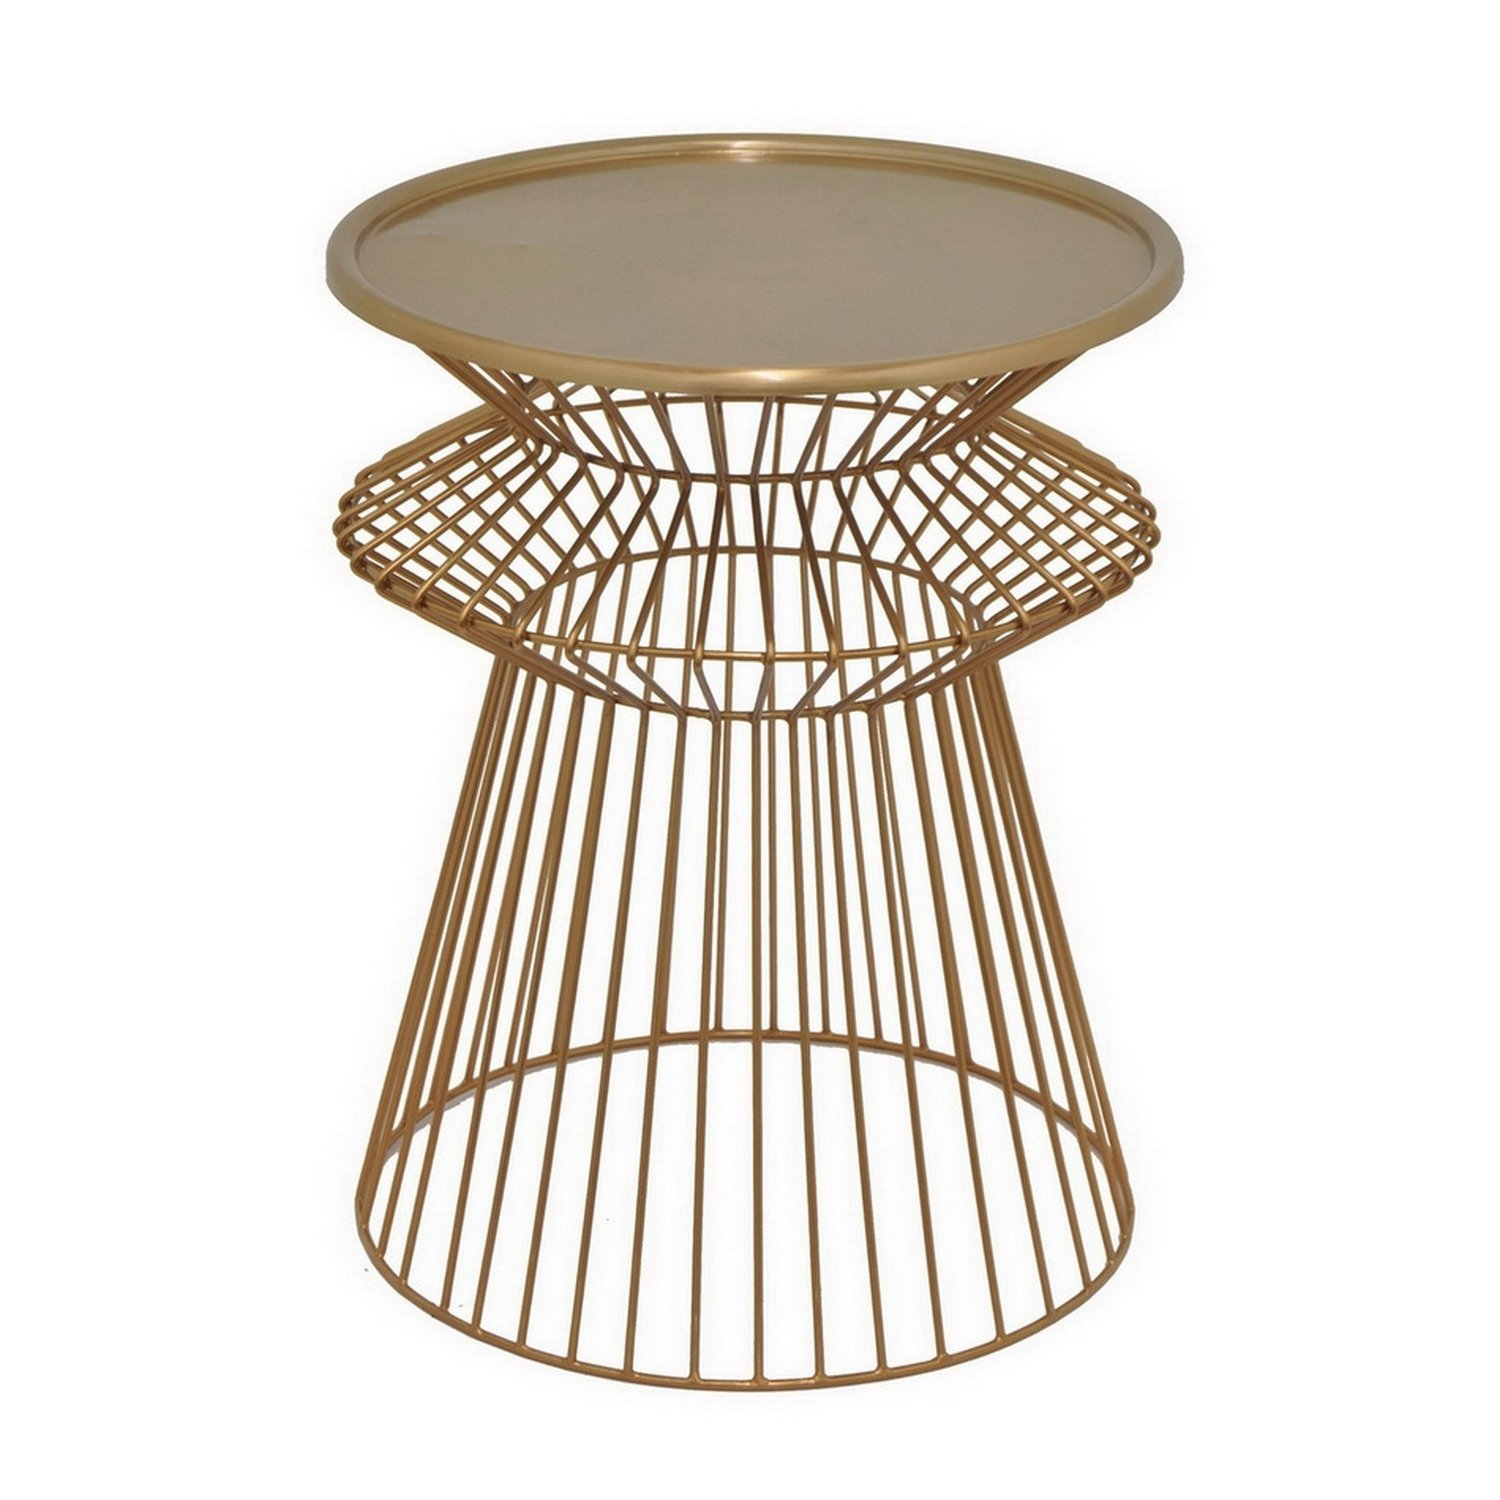 three hands round metal accent table bronze free shipping tables today homesense bar stools pink side square marble top end transition strips for tile hooker pottery barn legs